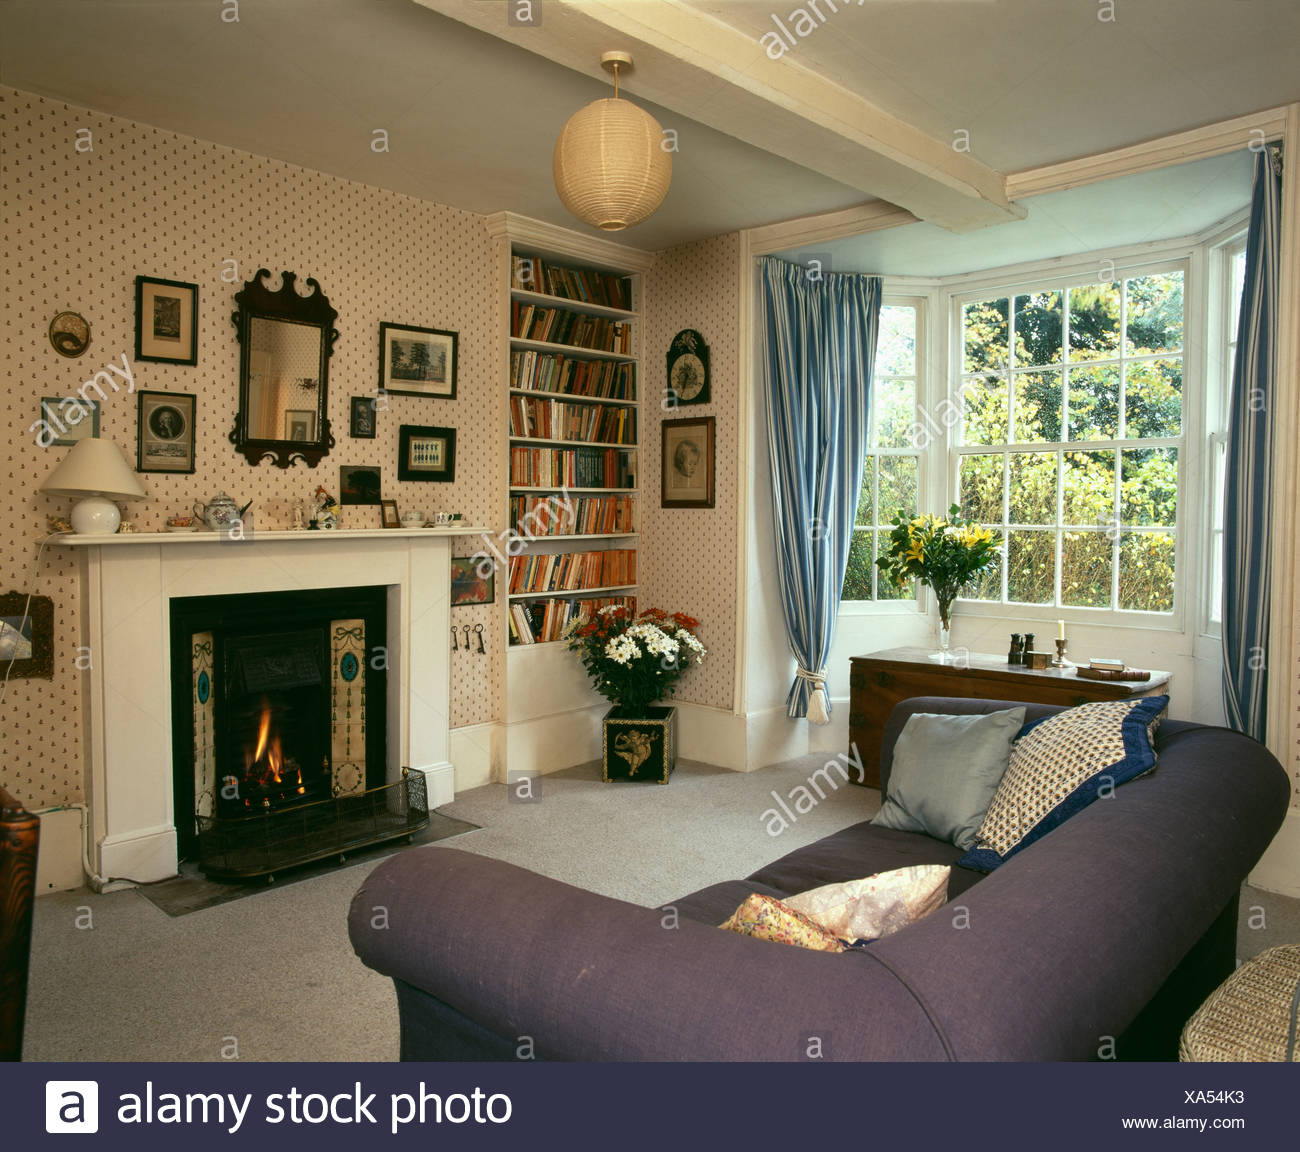 . Country livingroom with fireplace and ornaments suspended from